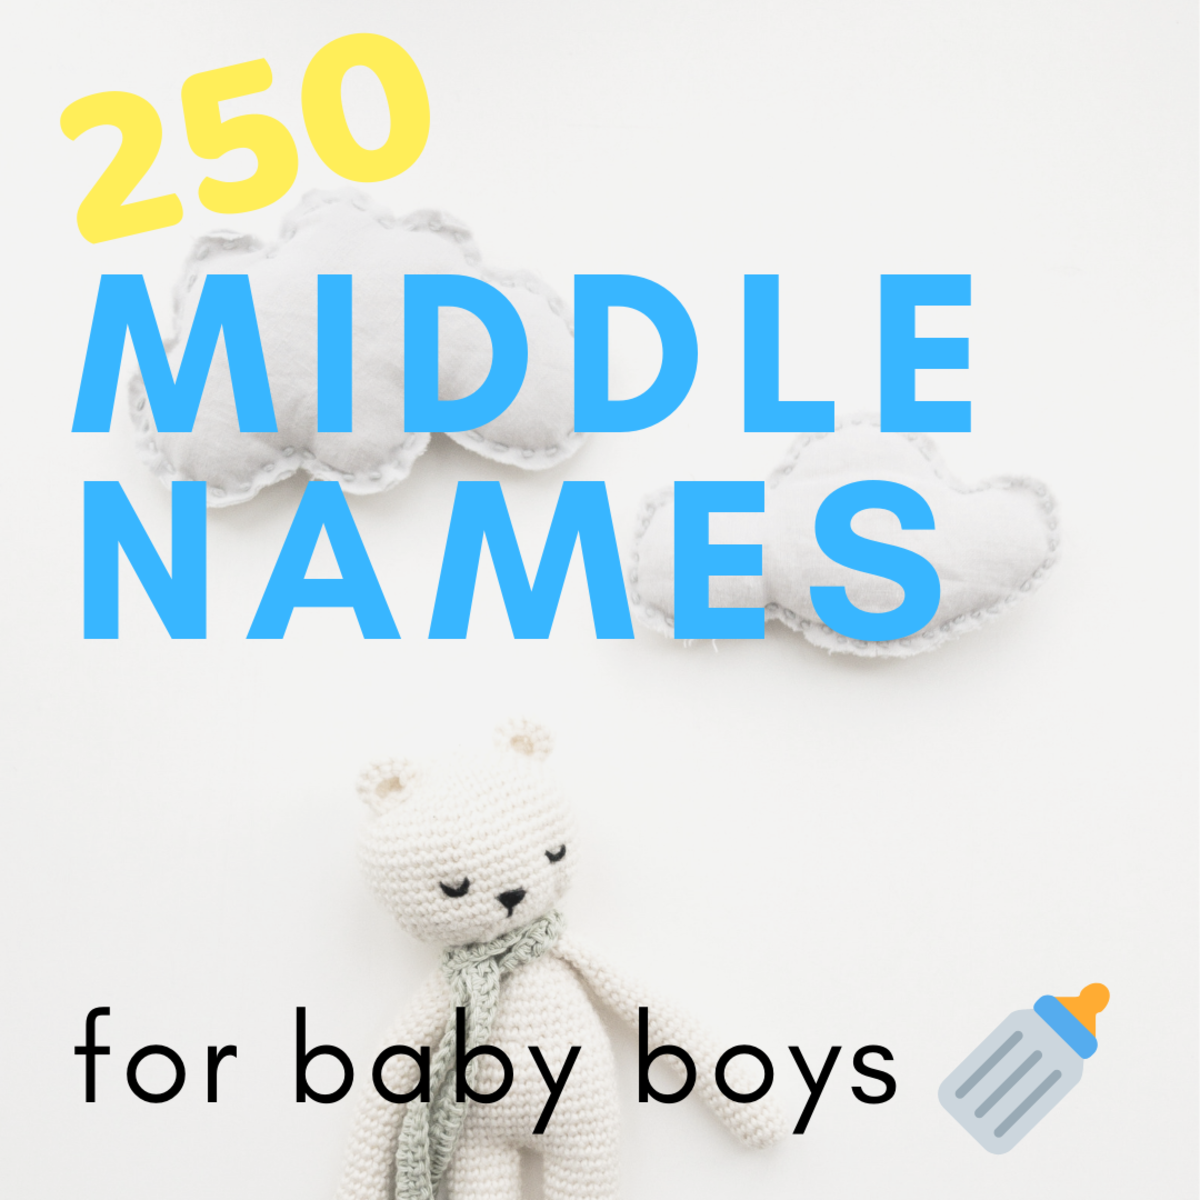 Middle name ideas for baby boys.